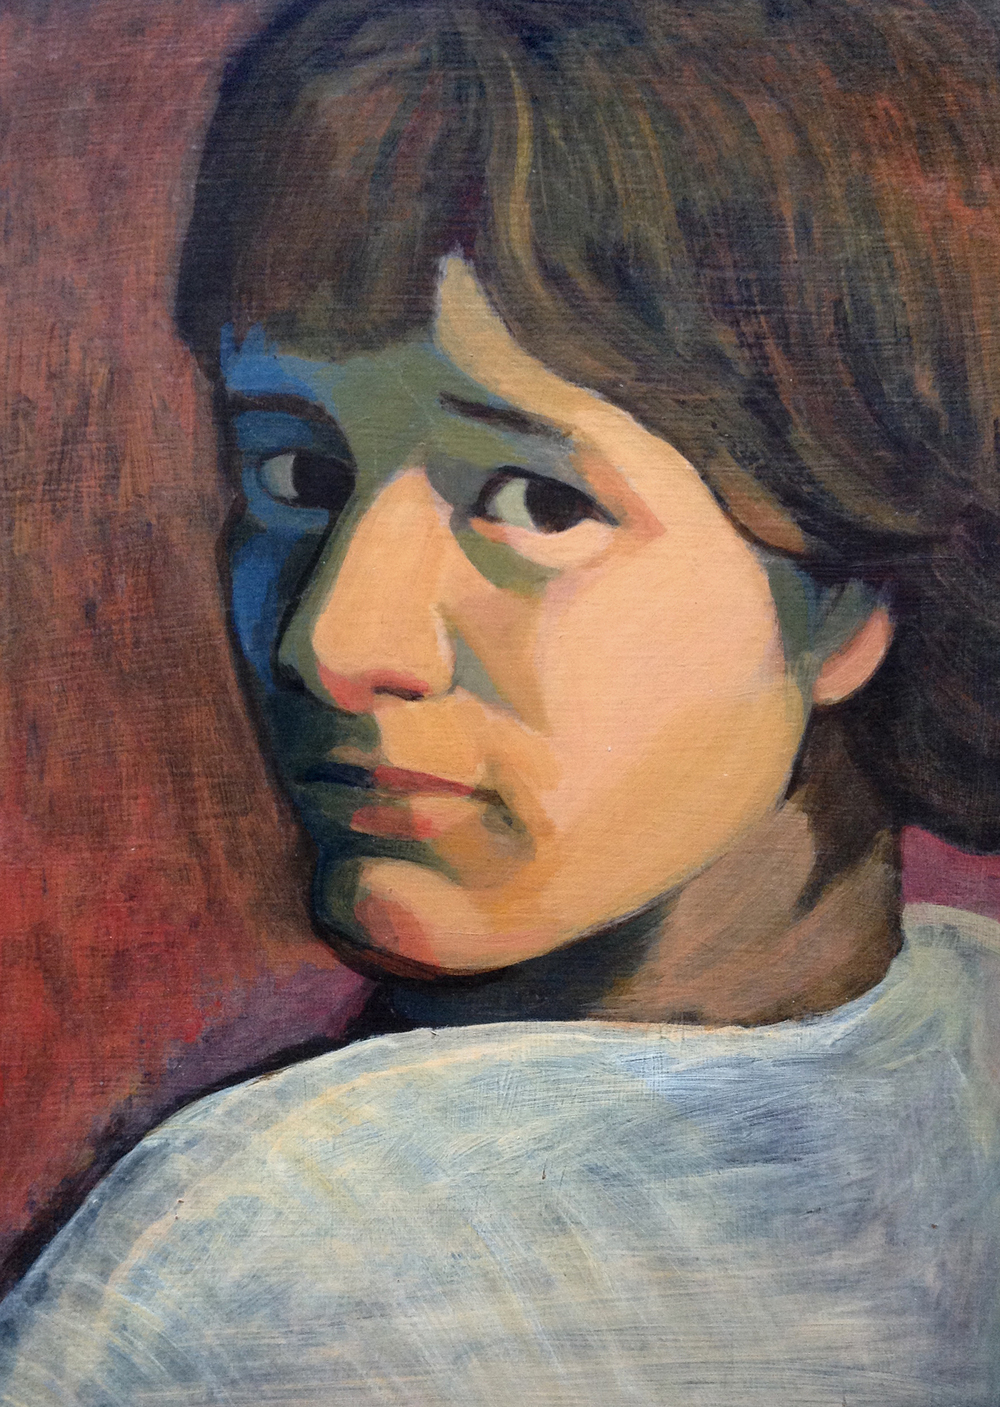 My mother's painting of me as a teenager.